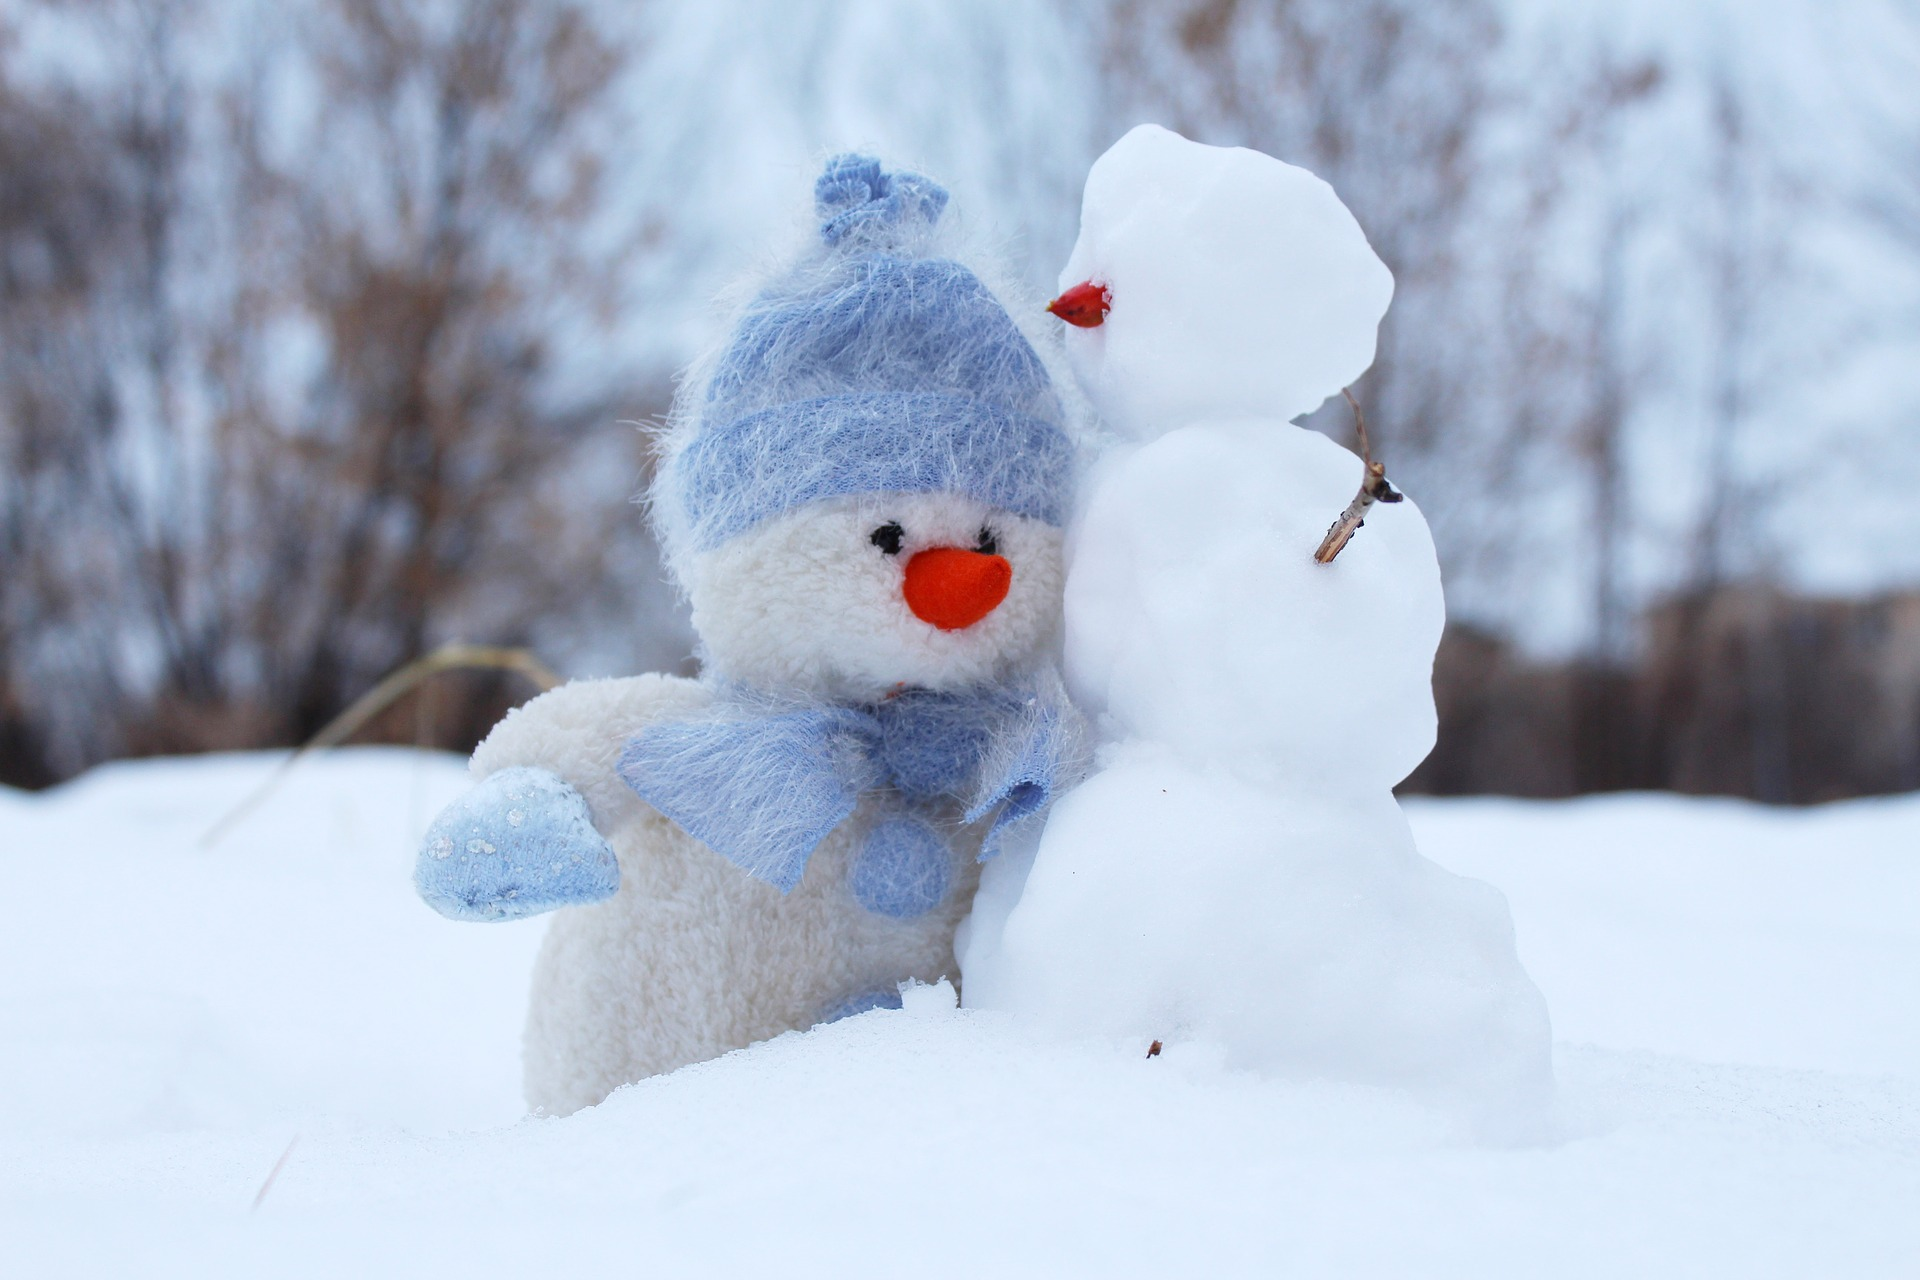 Family-Friendly Friday: Snowpeople Edition